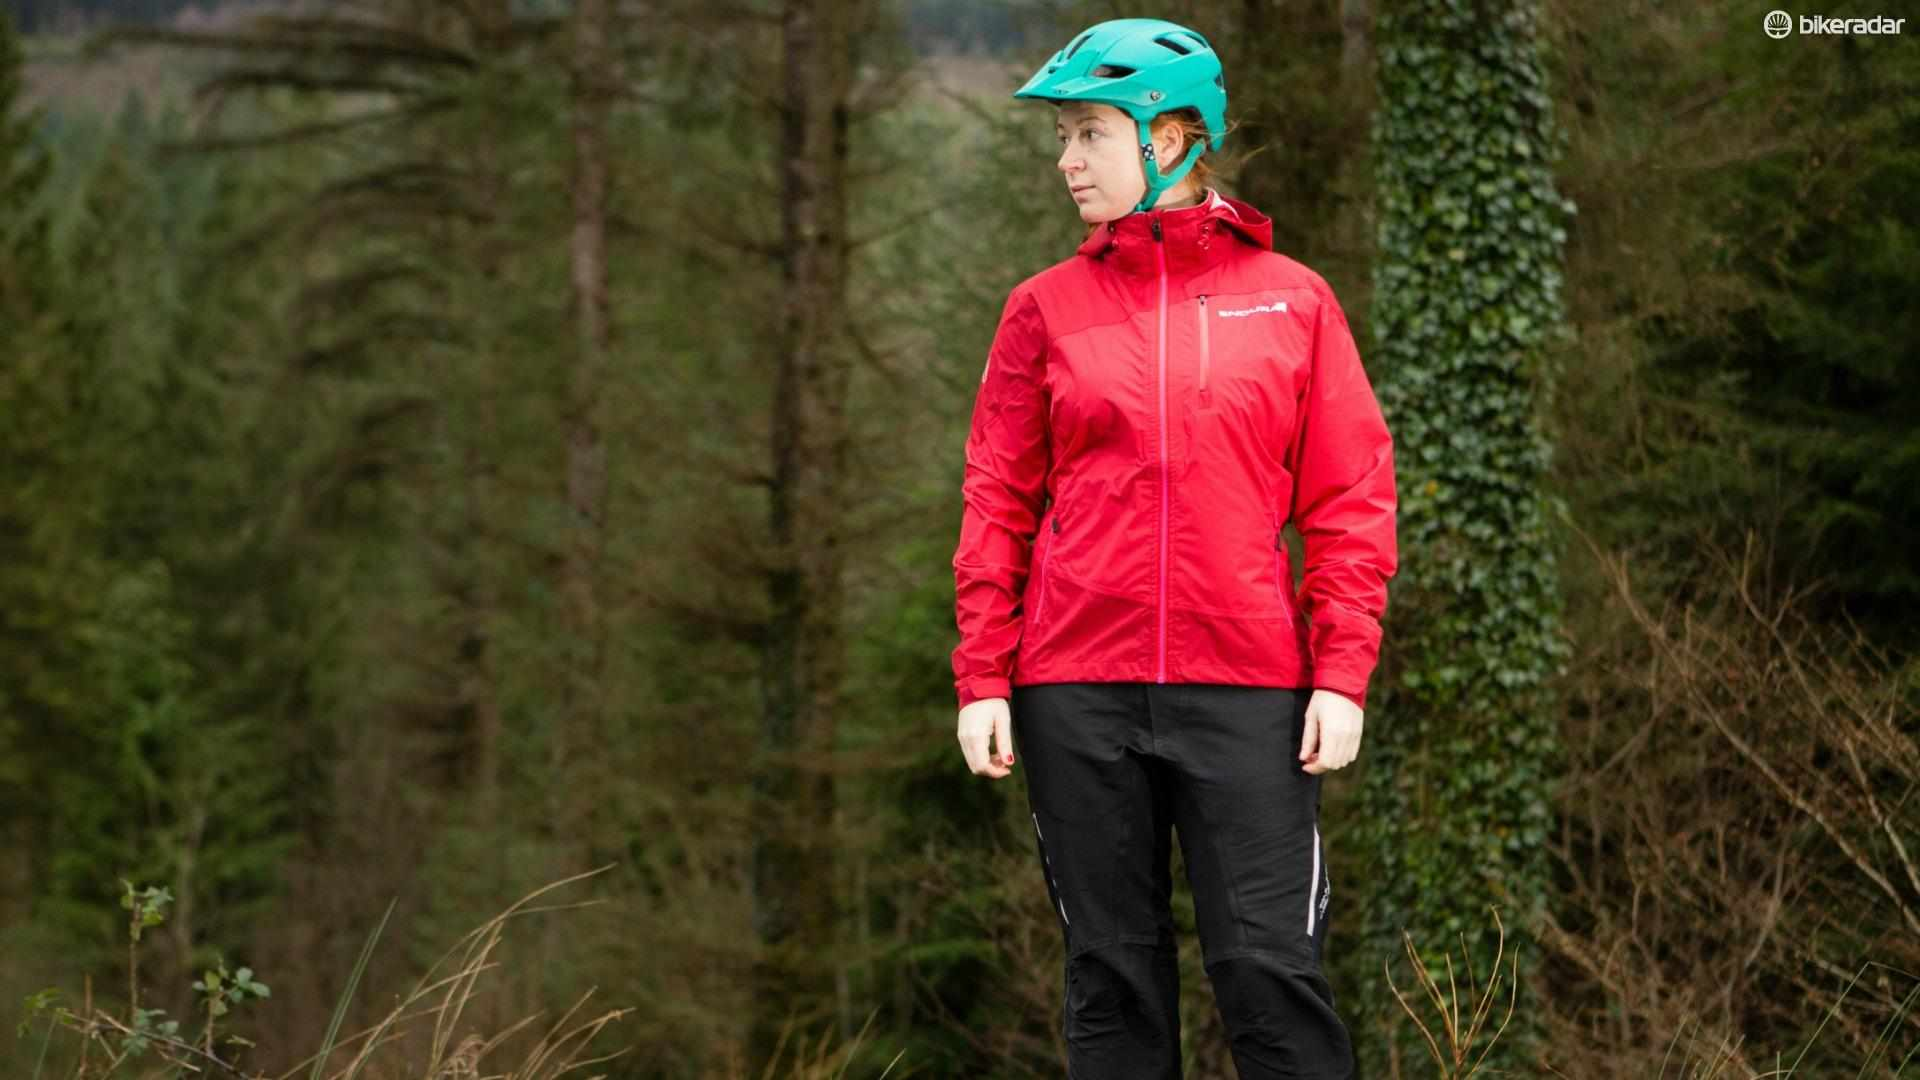 The Endura women's mountain bike range includes waterproof jacket, shorts and accessories